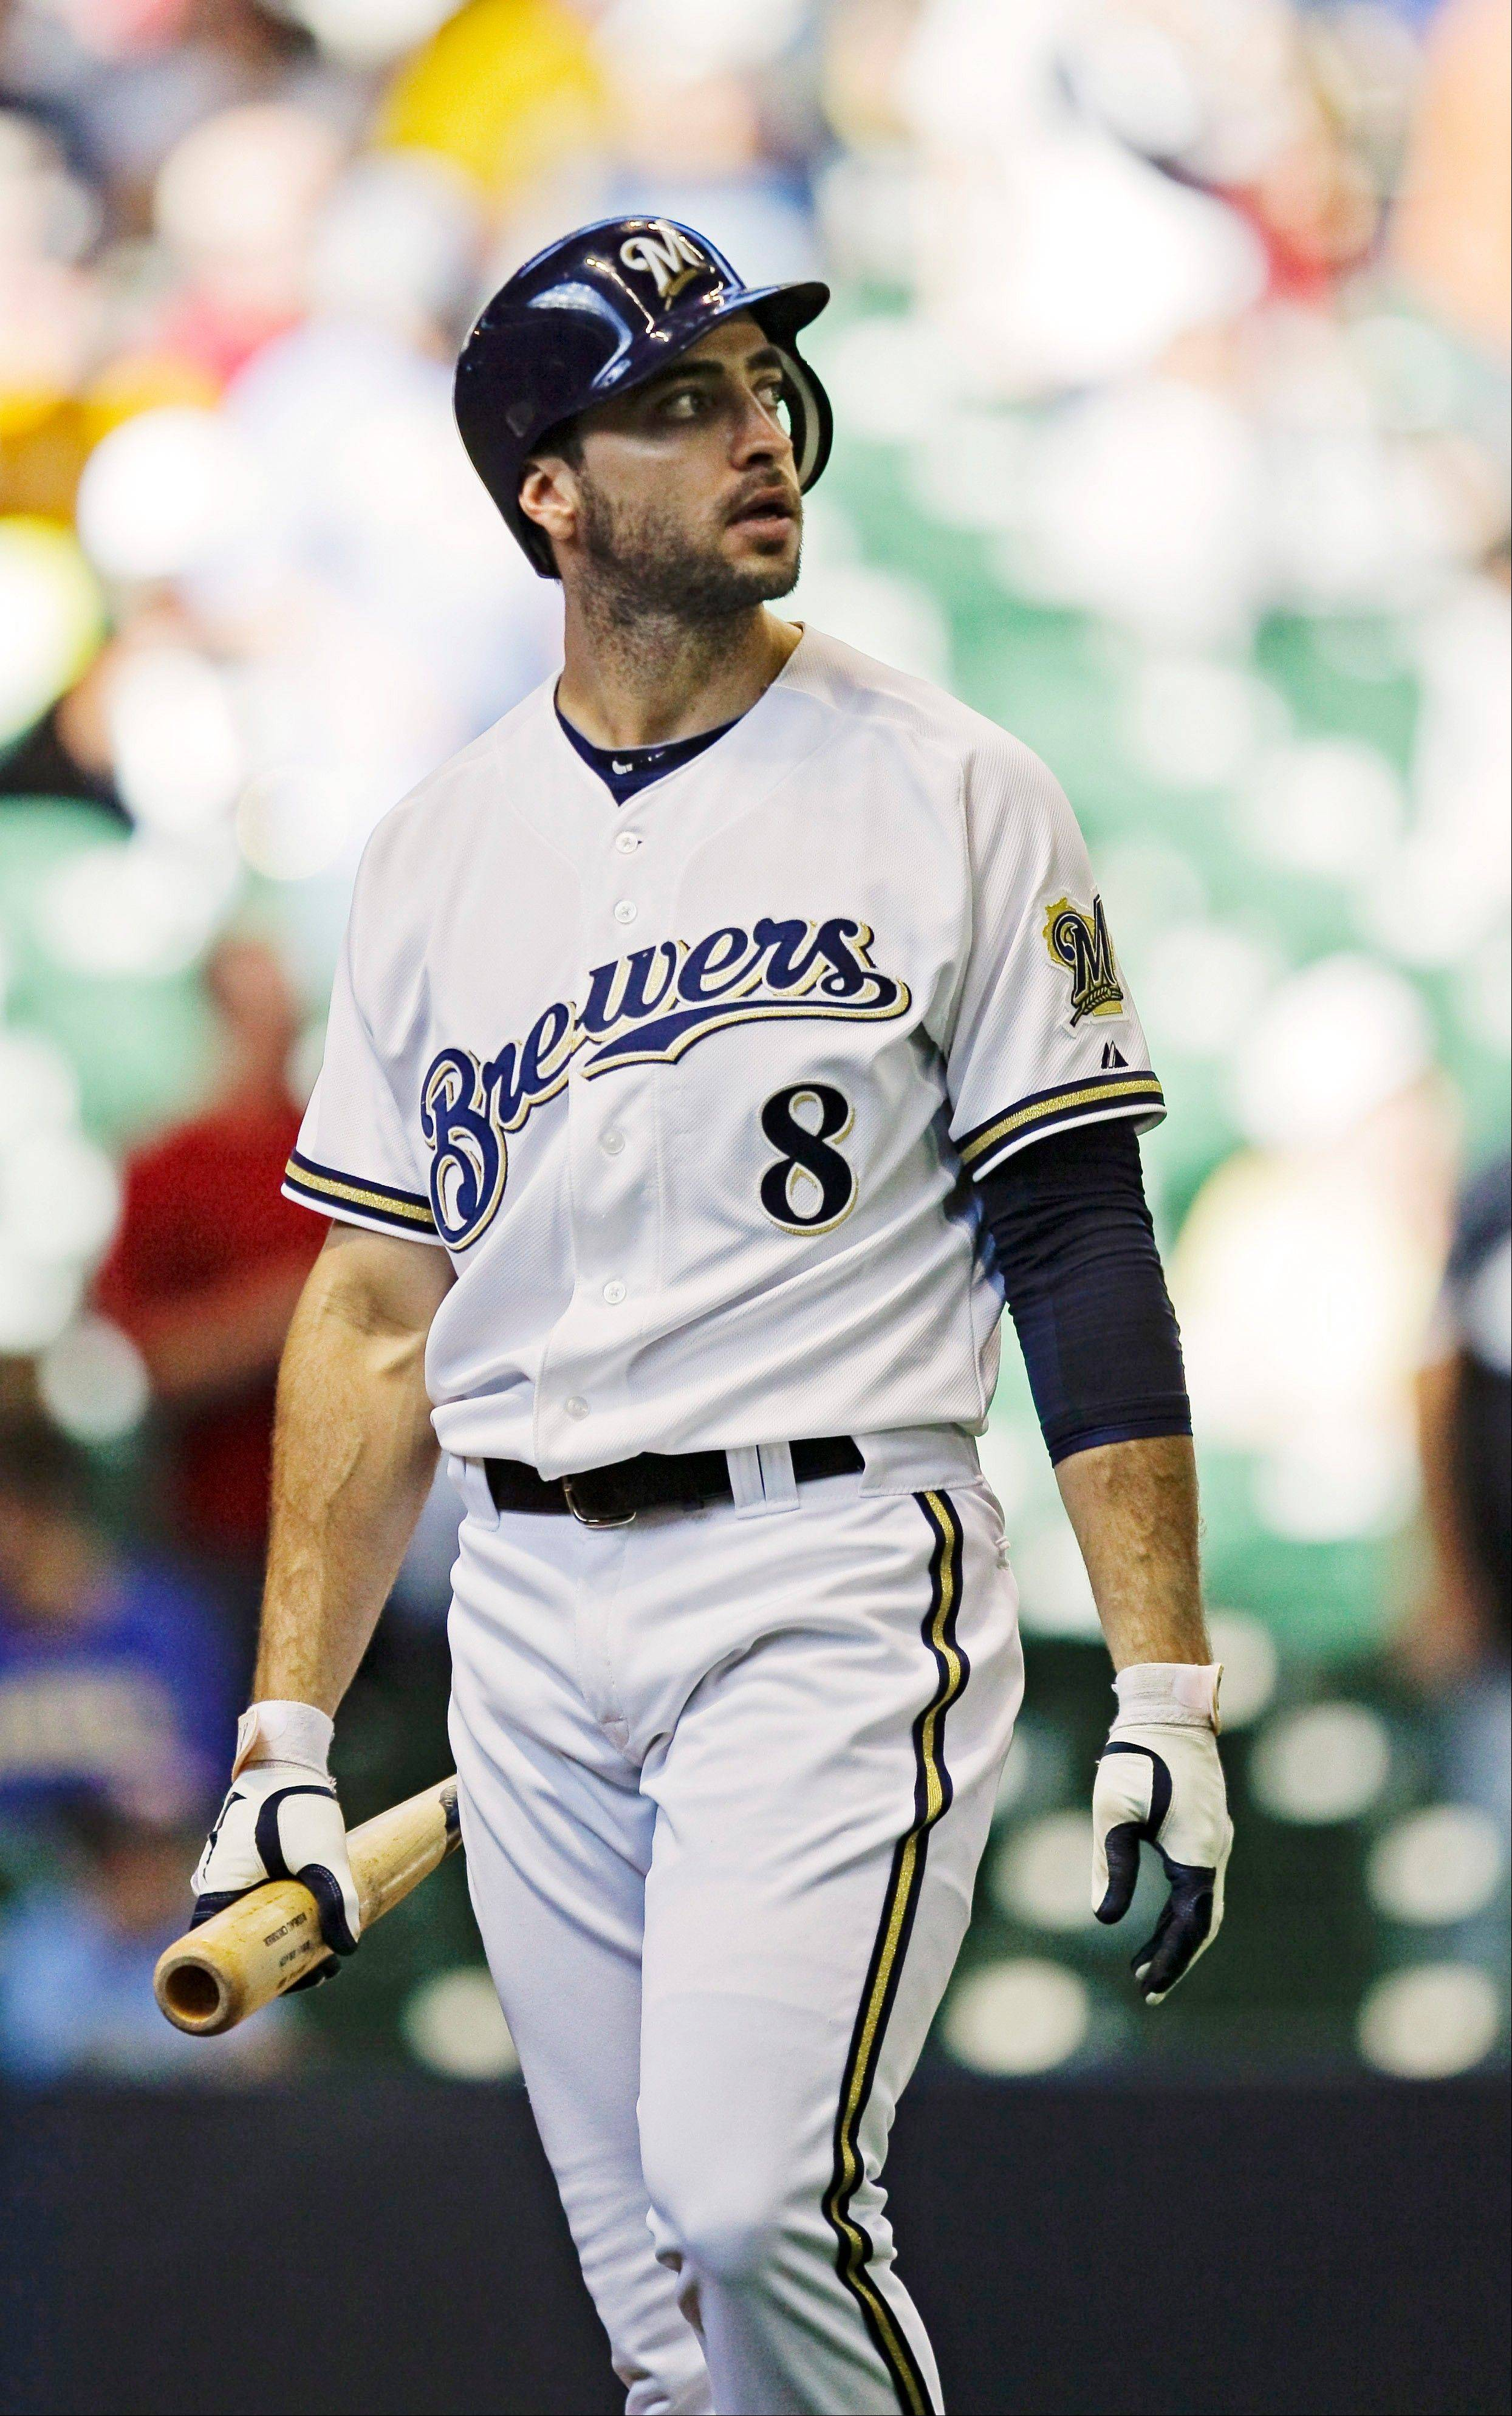 The Milwaukee Brewers� Ryan Braun has been suspended without pay for the rest of the season, admitting he �made mistakes� in violating Major Leauge Baseball�s drug policies.